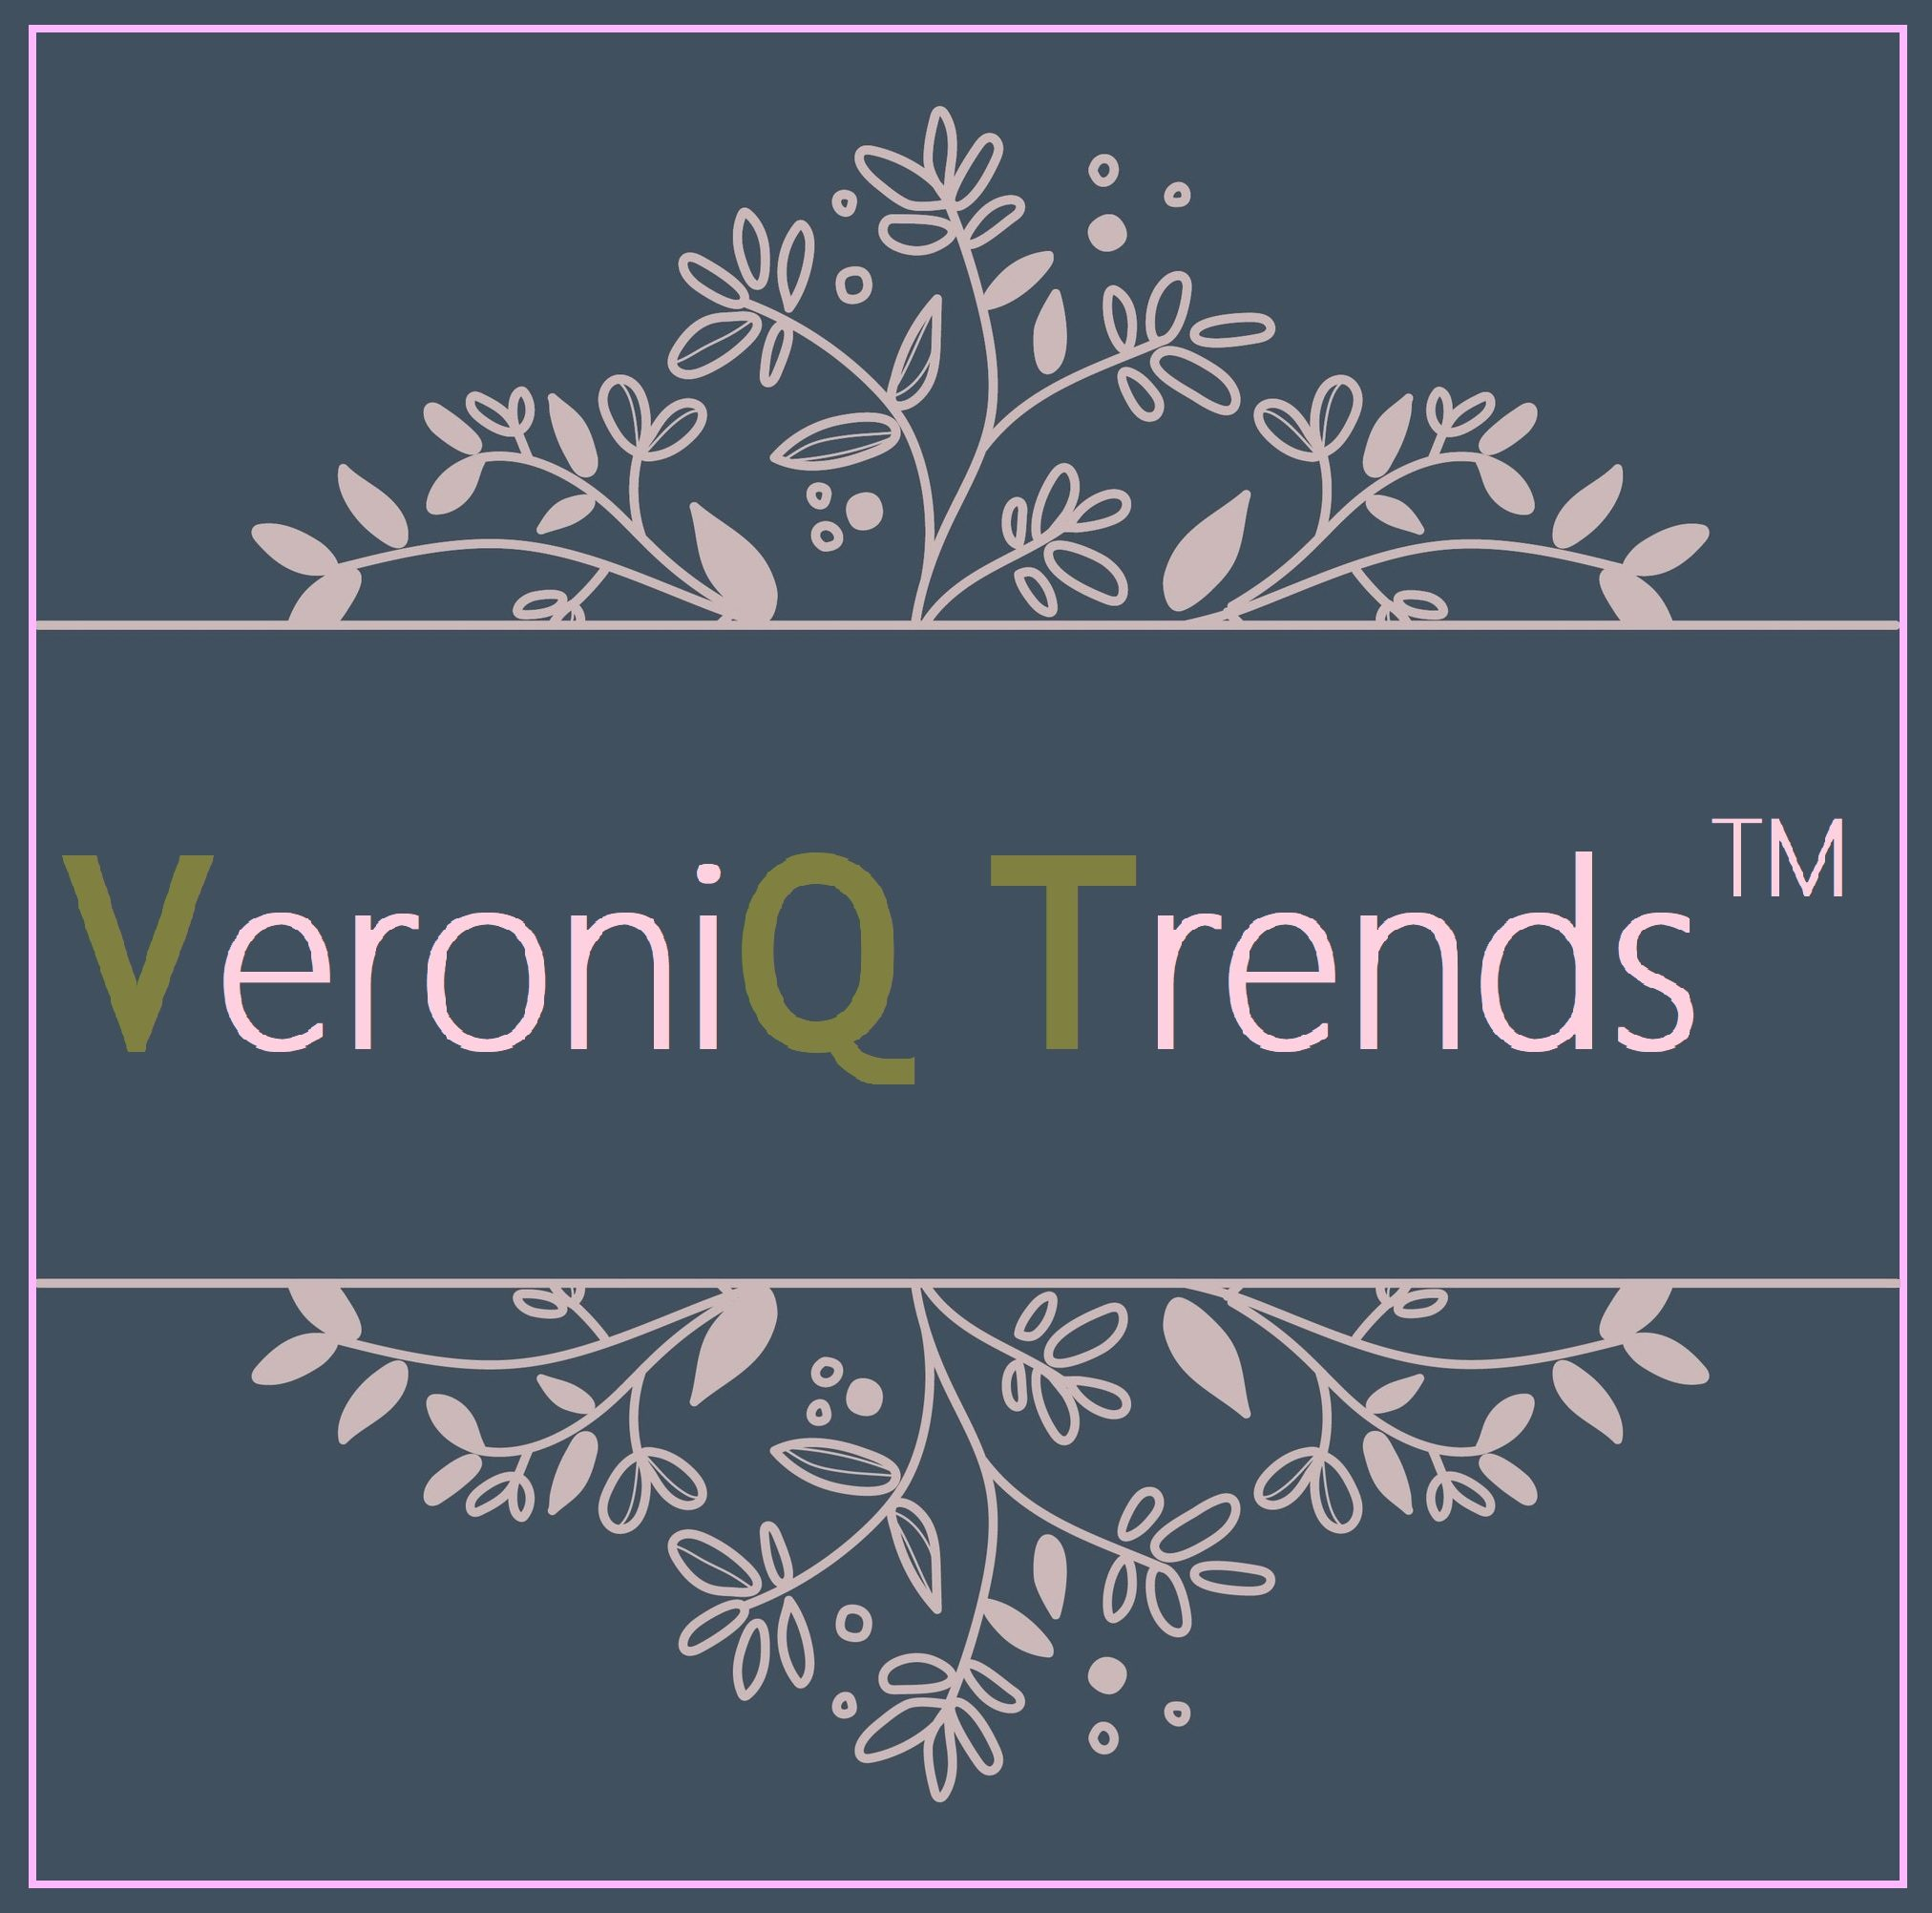 VeroniQ Trends